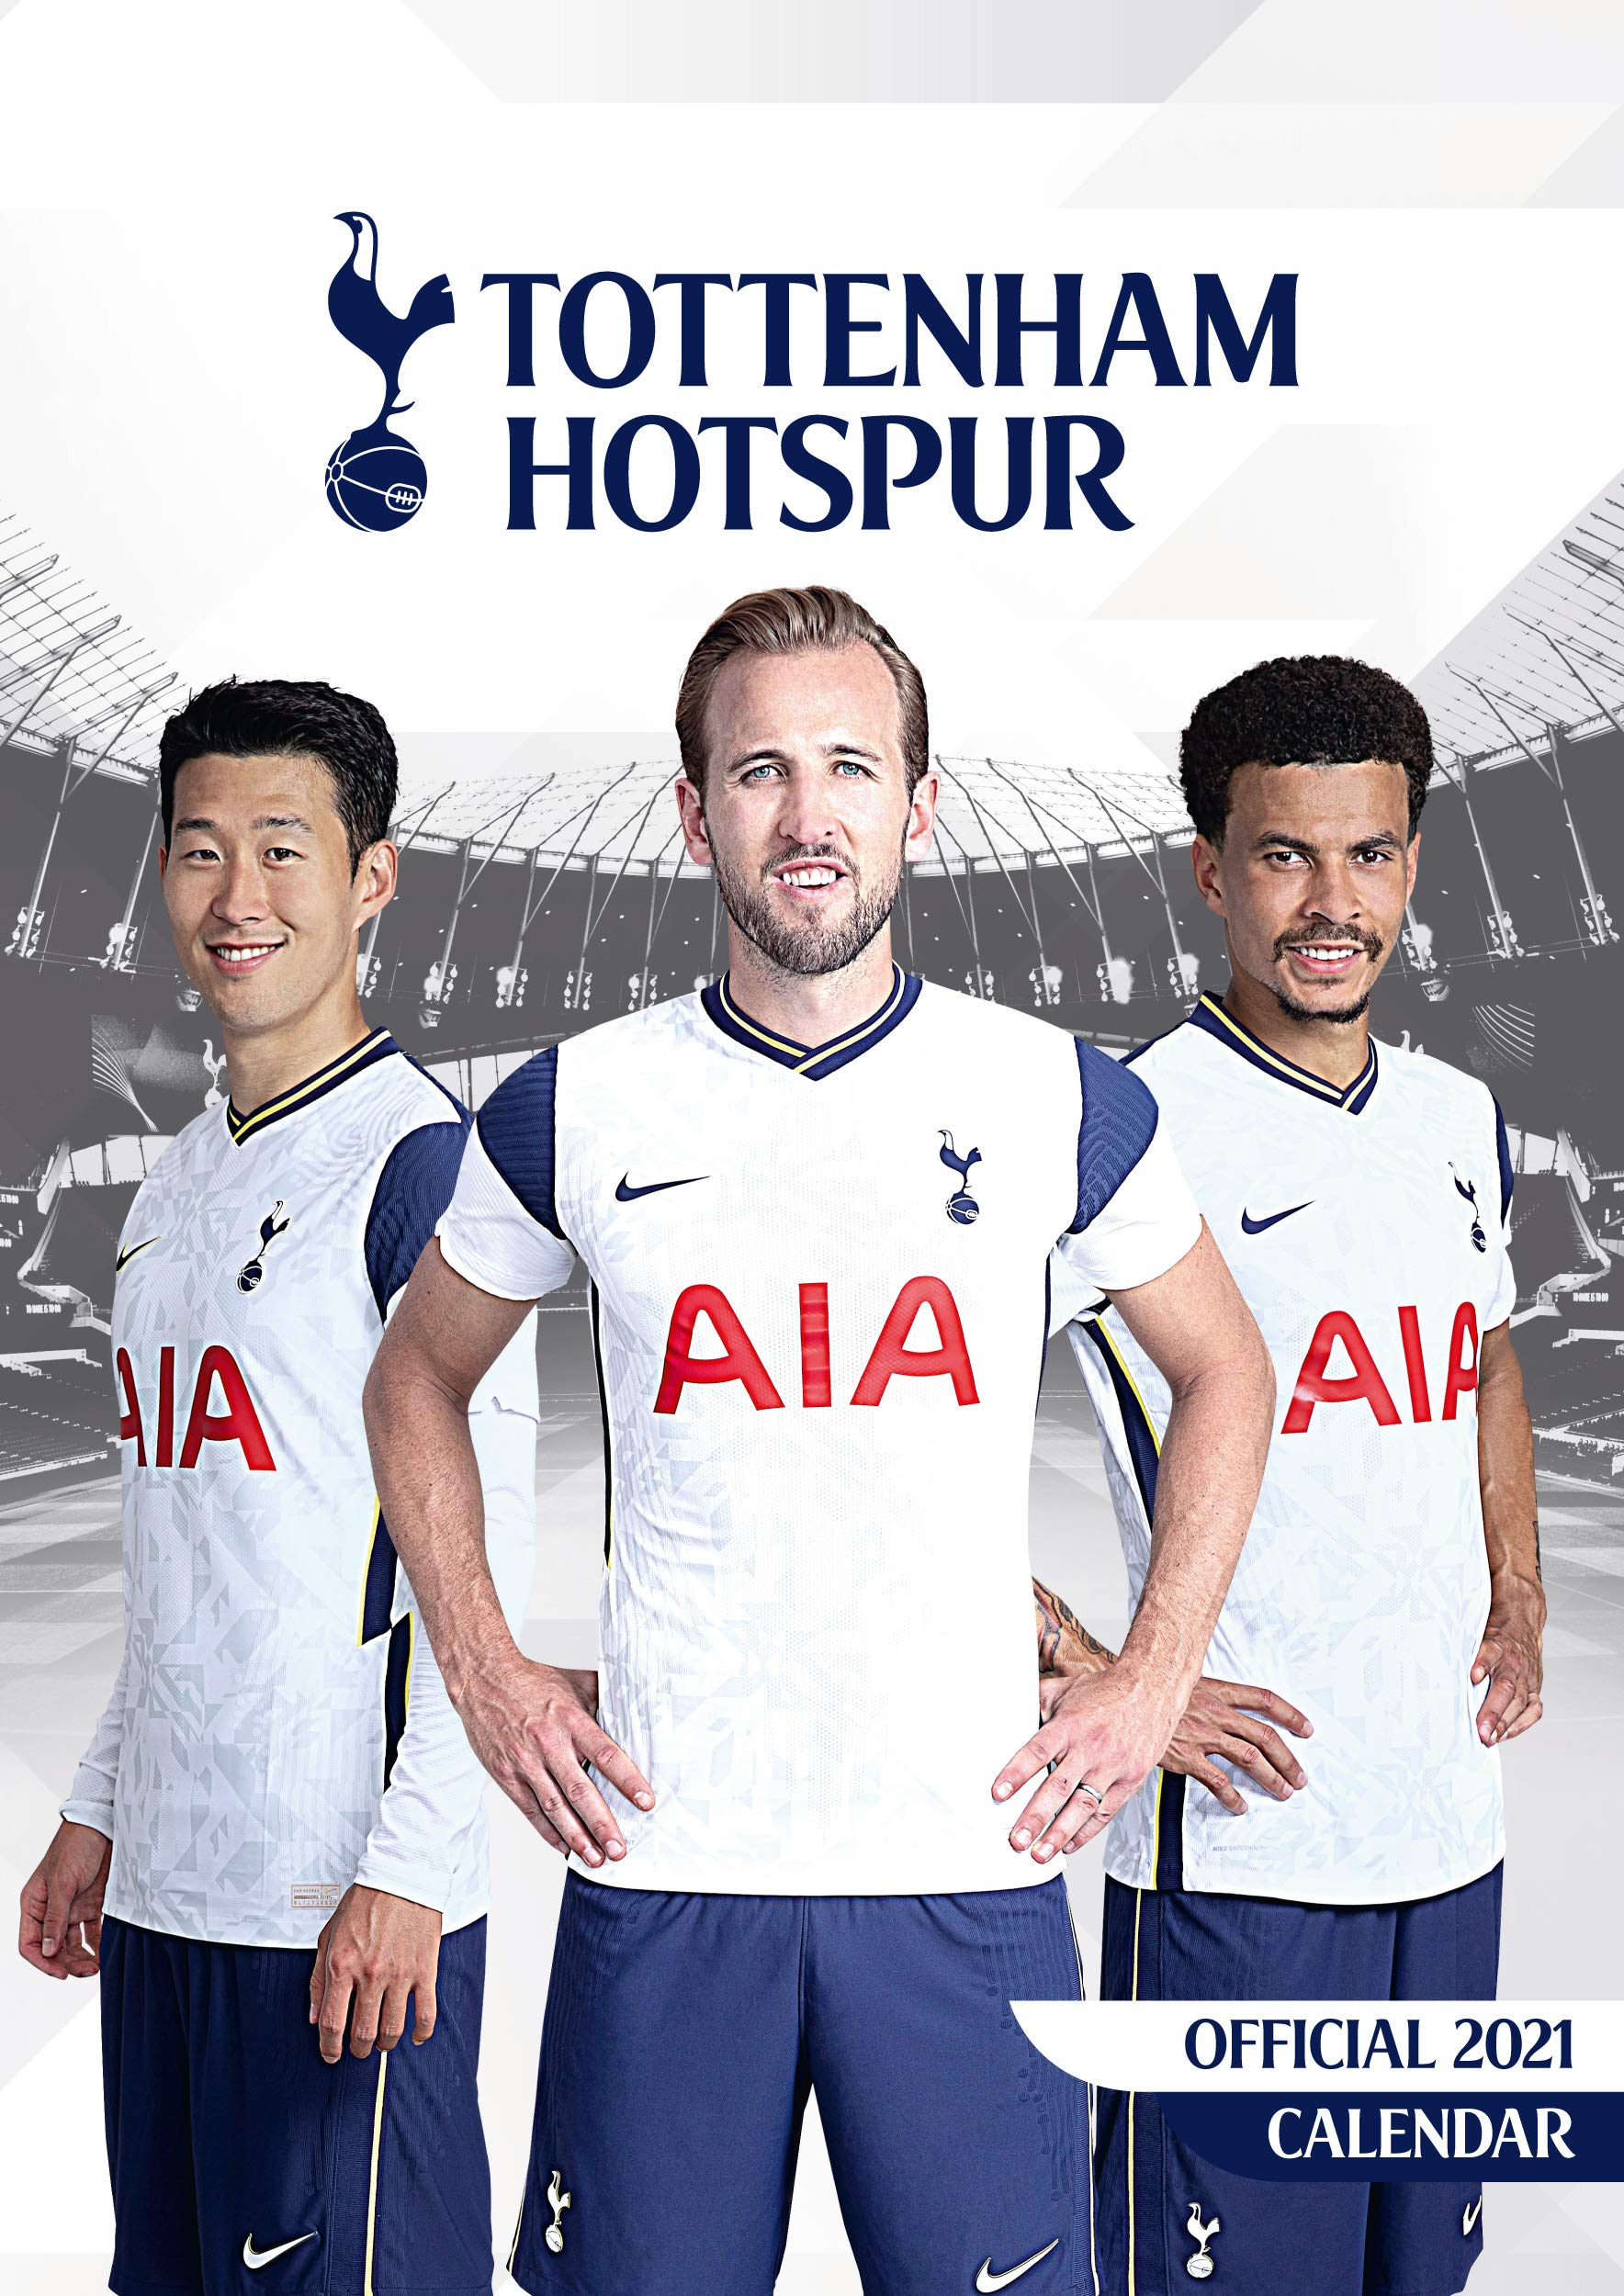 Official Tottenham Hotspur Calendar A Wall Format Calendar Amazon co uk Danilo Promotions LTD Books